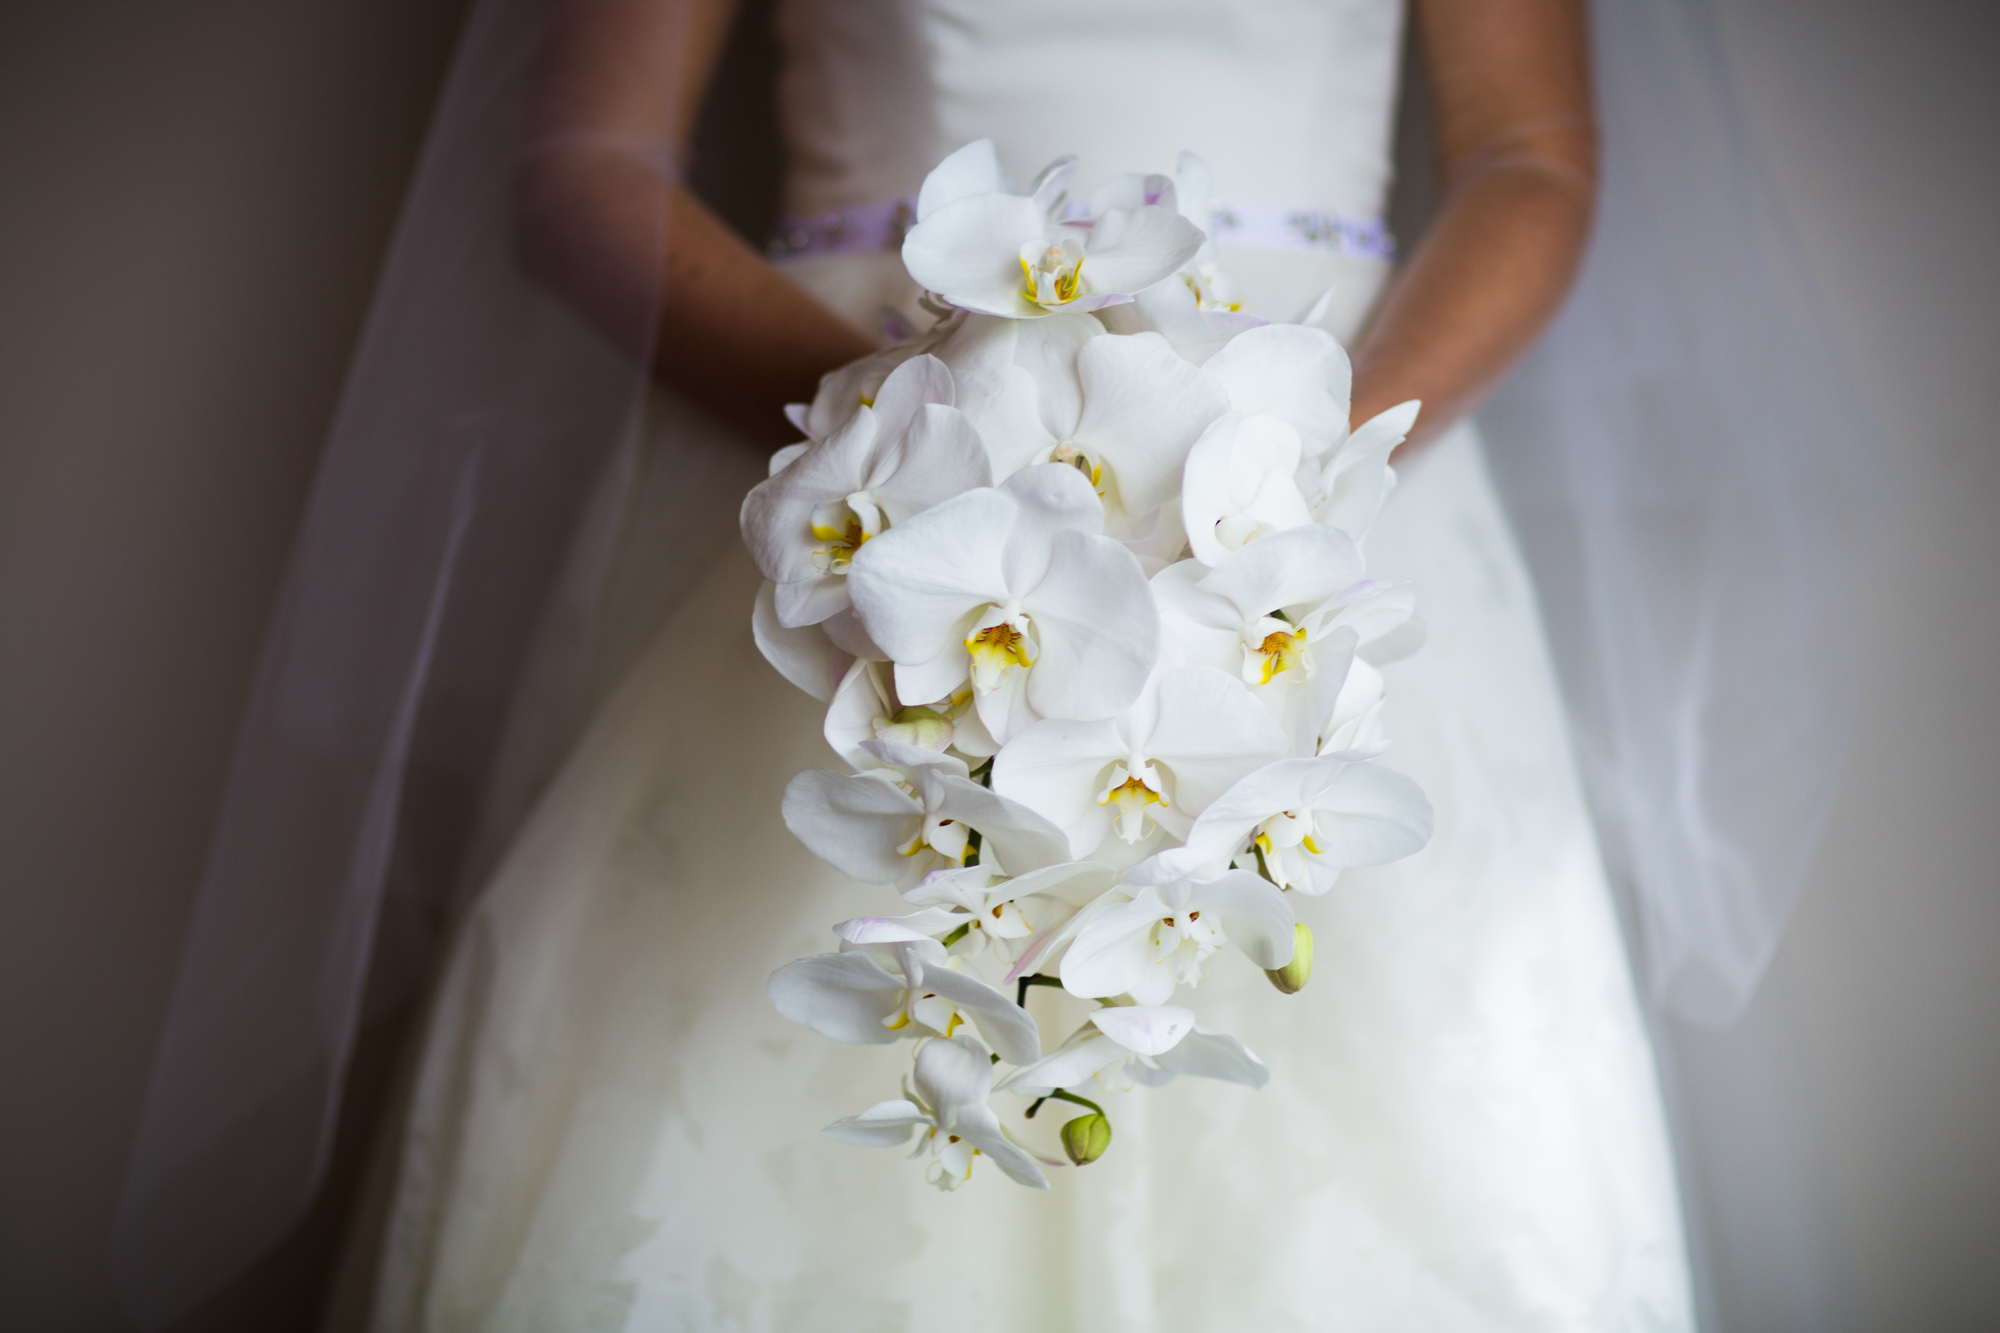 Orchid bridal bouquet for downtown Chicago wedding at Millennium Park Harris Rooftop.